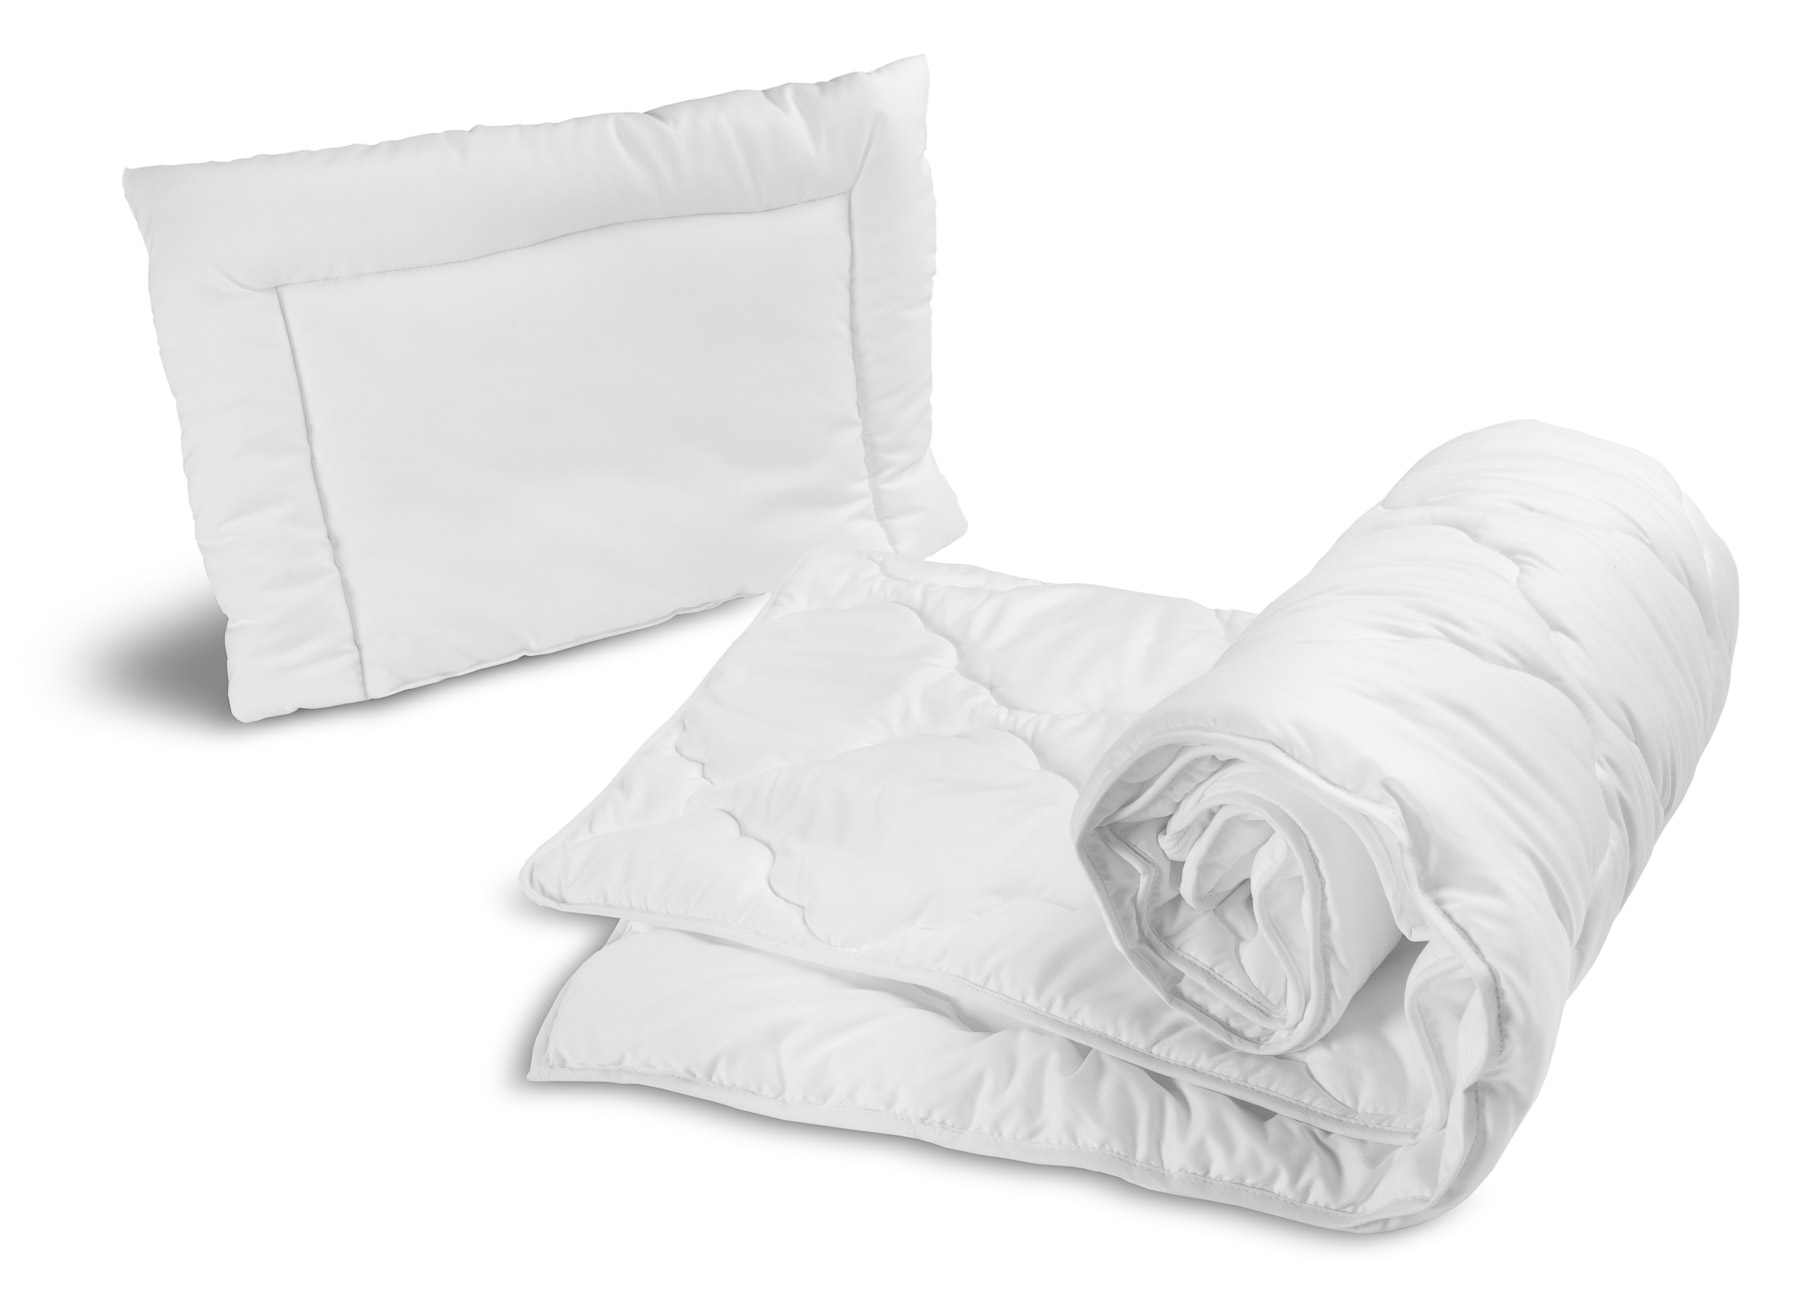 Bed-linen-insterts